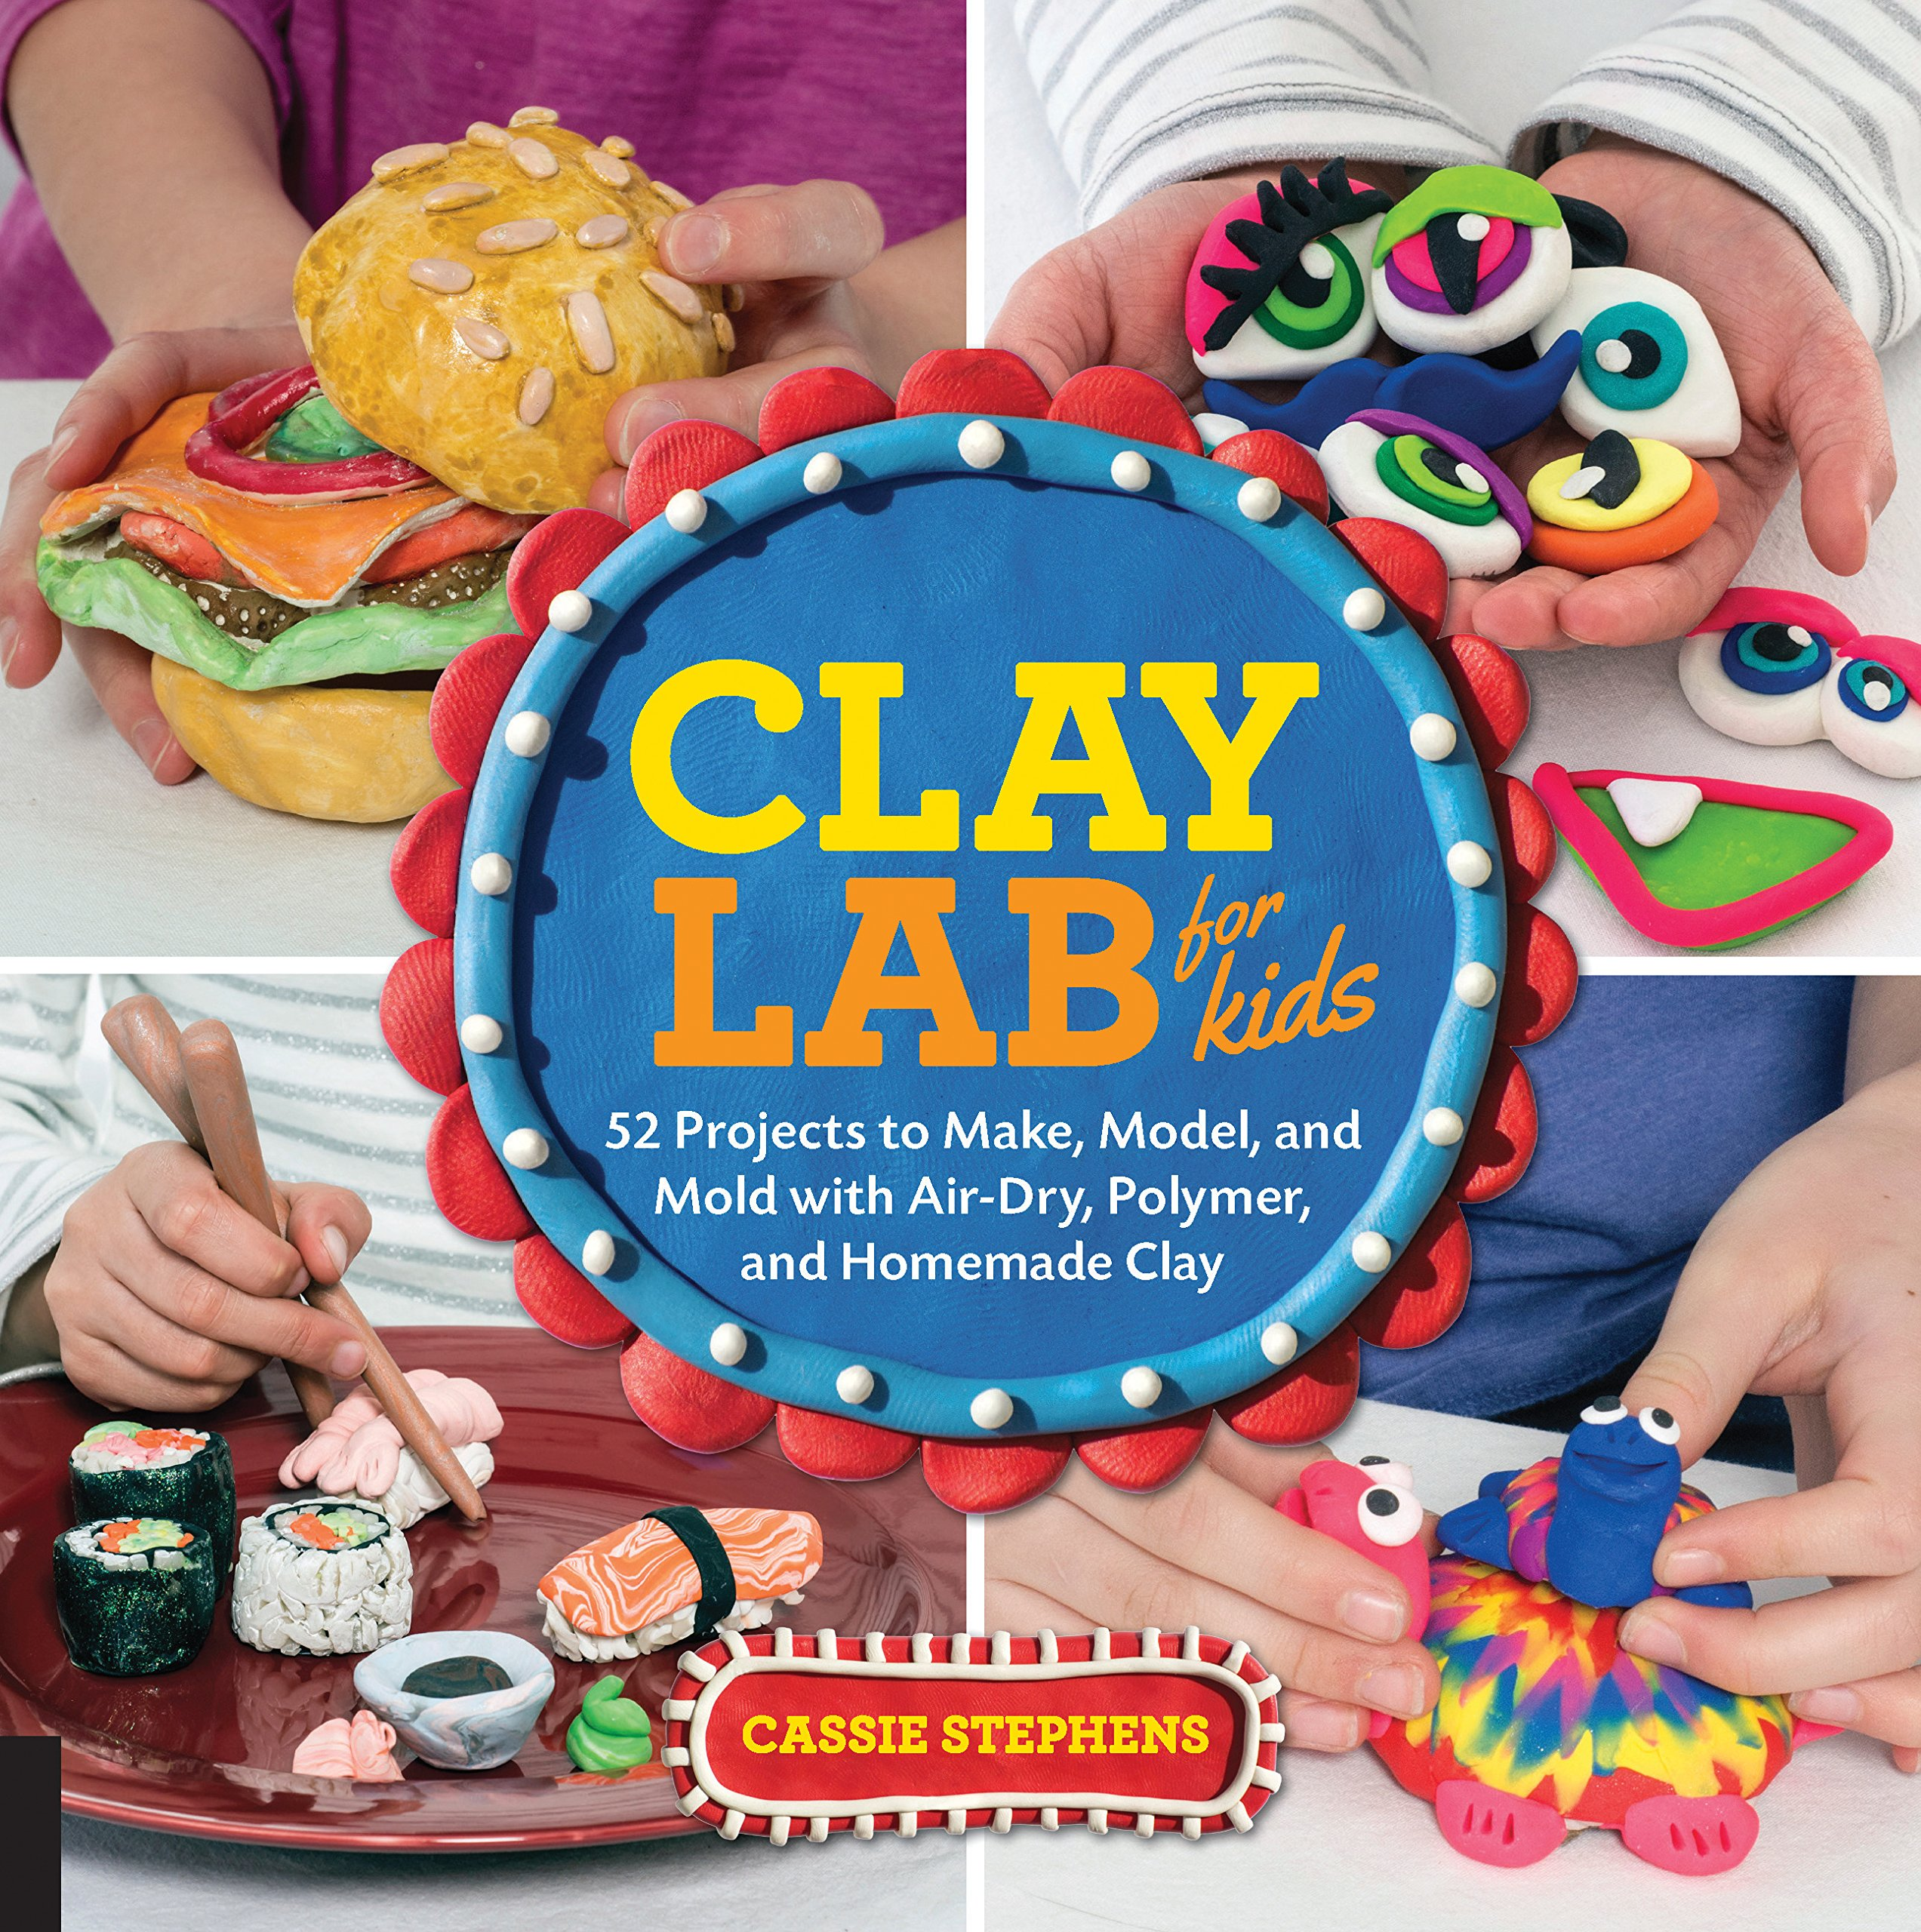 clay lab for kids 52 projects to make model and mold with air dry